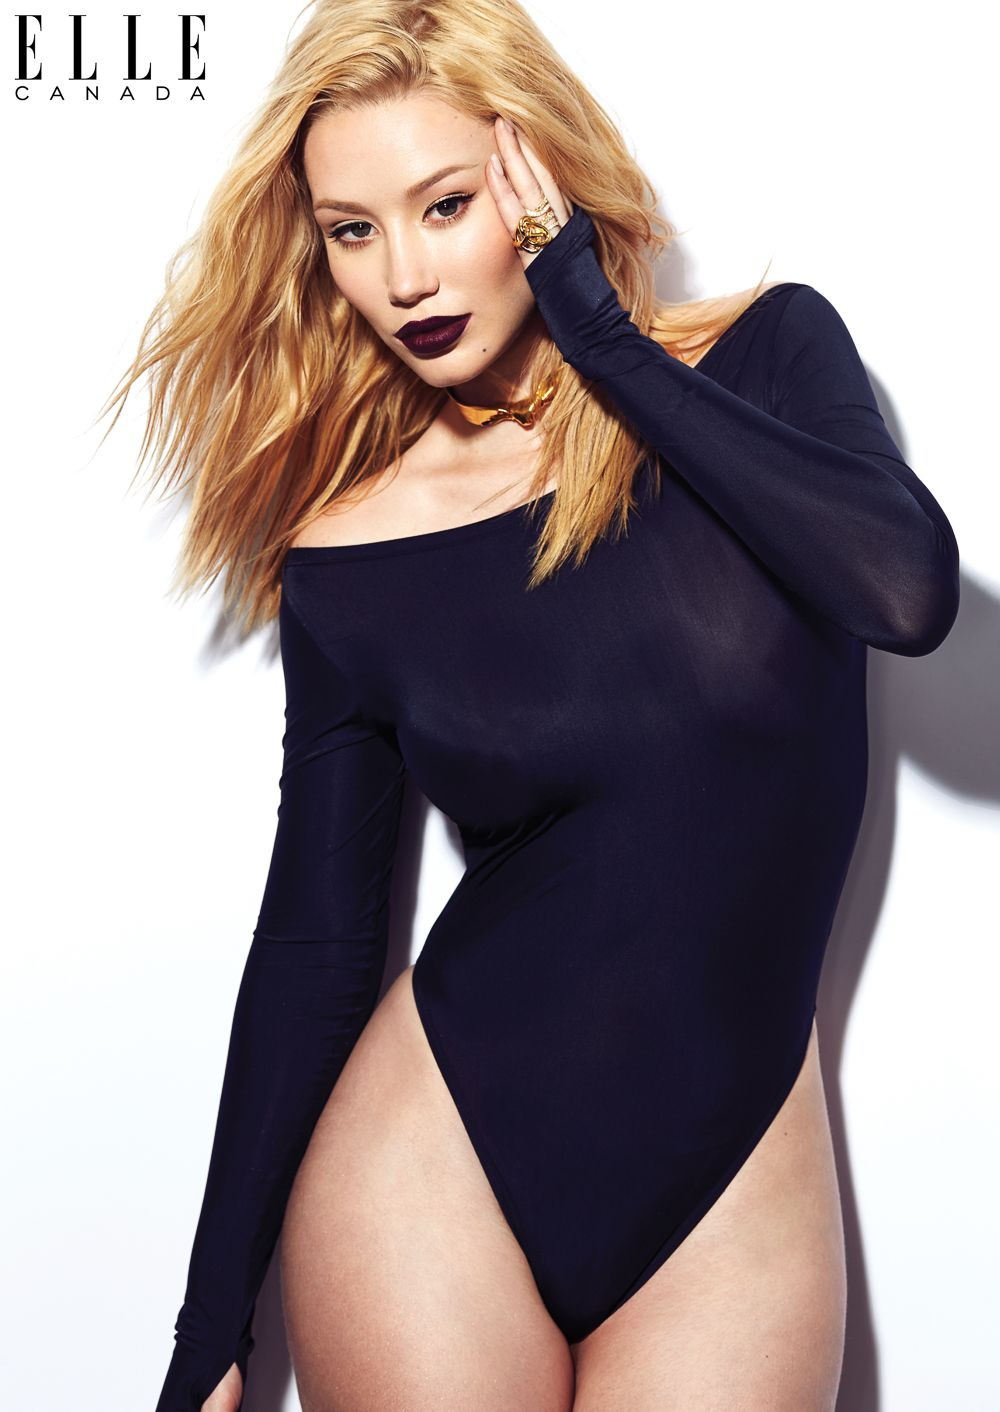 Hot Pics Of Iggy Azalea